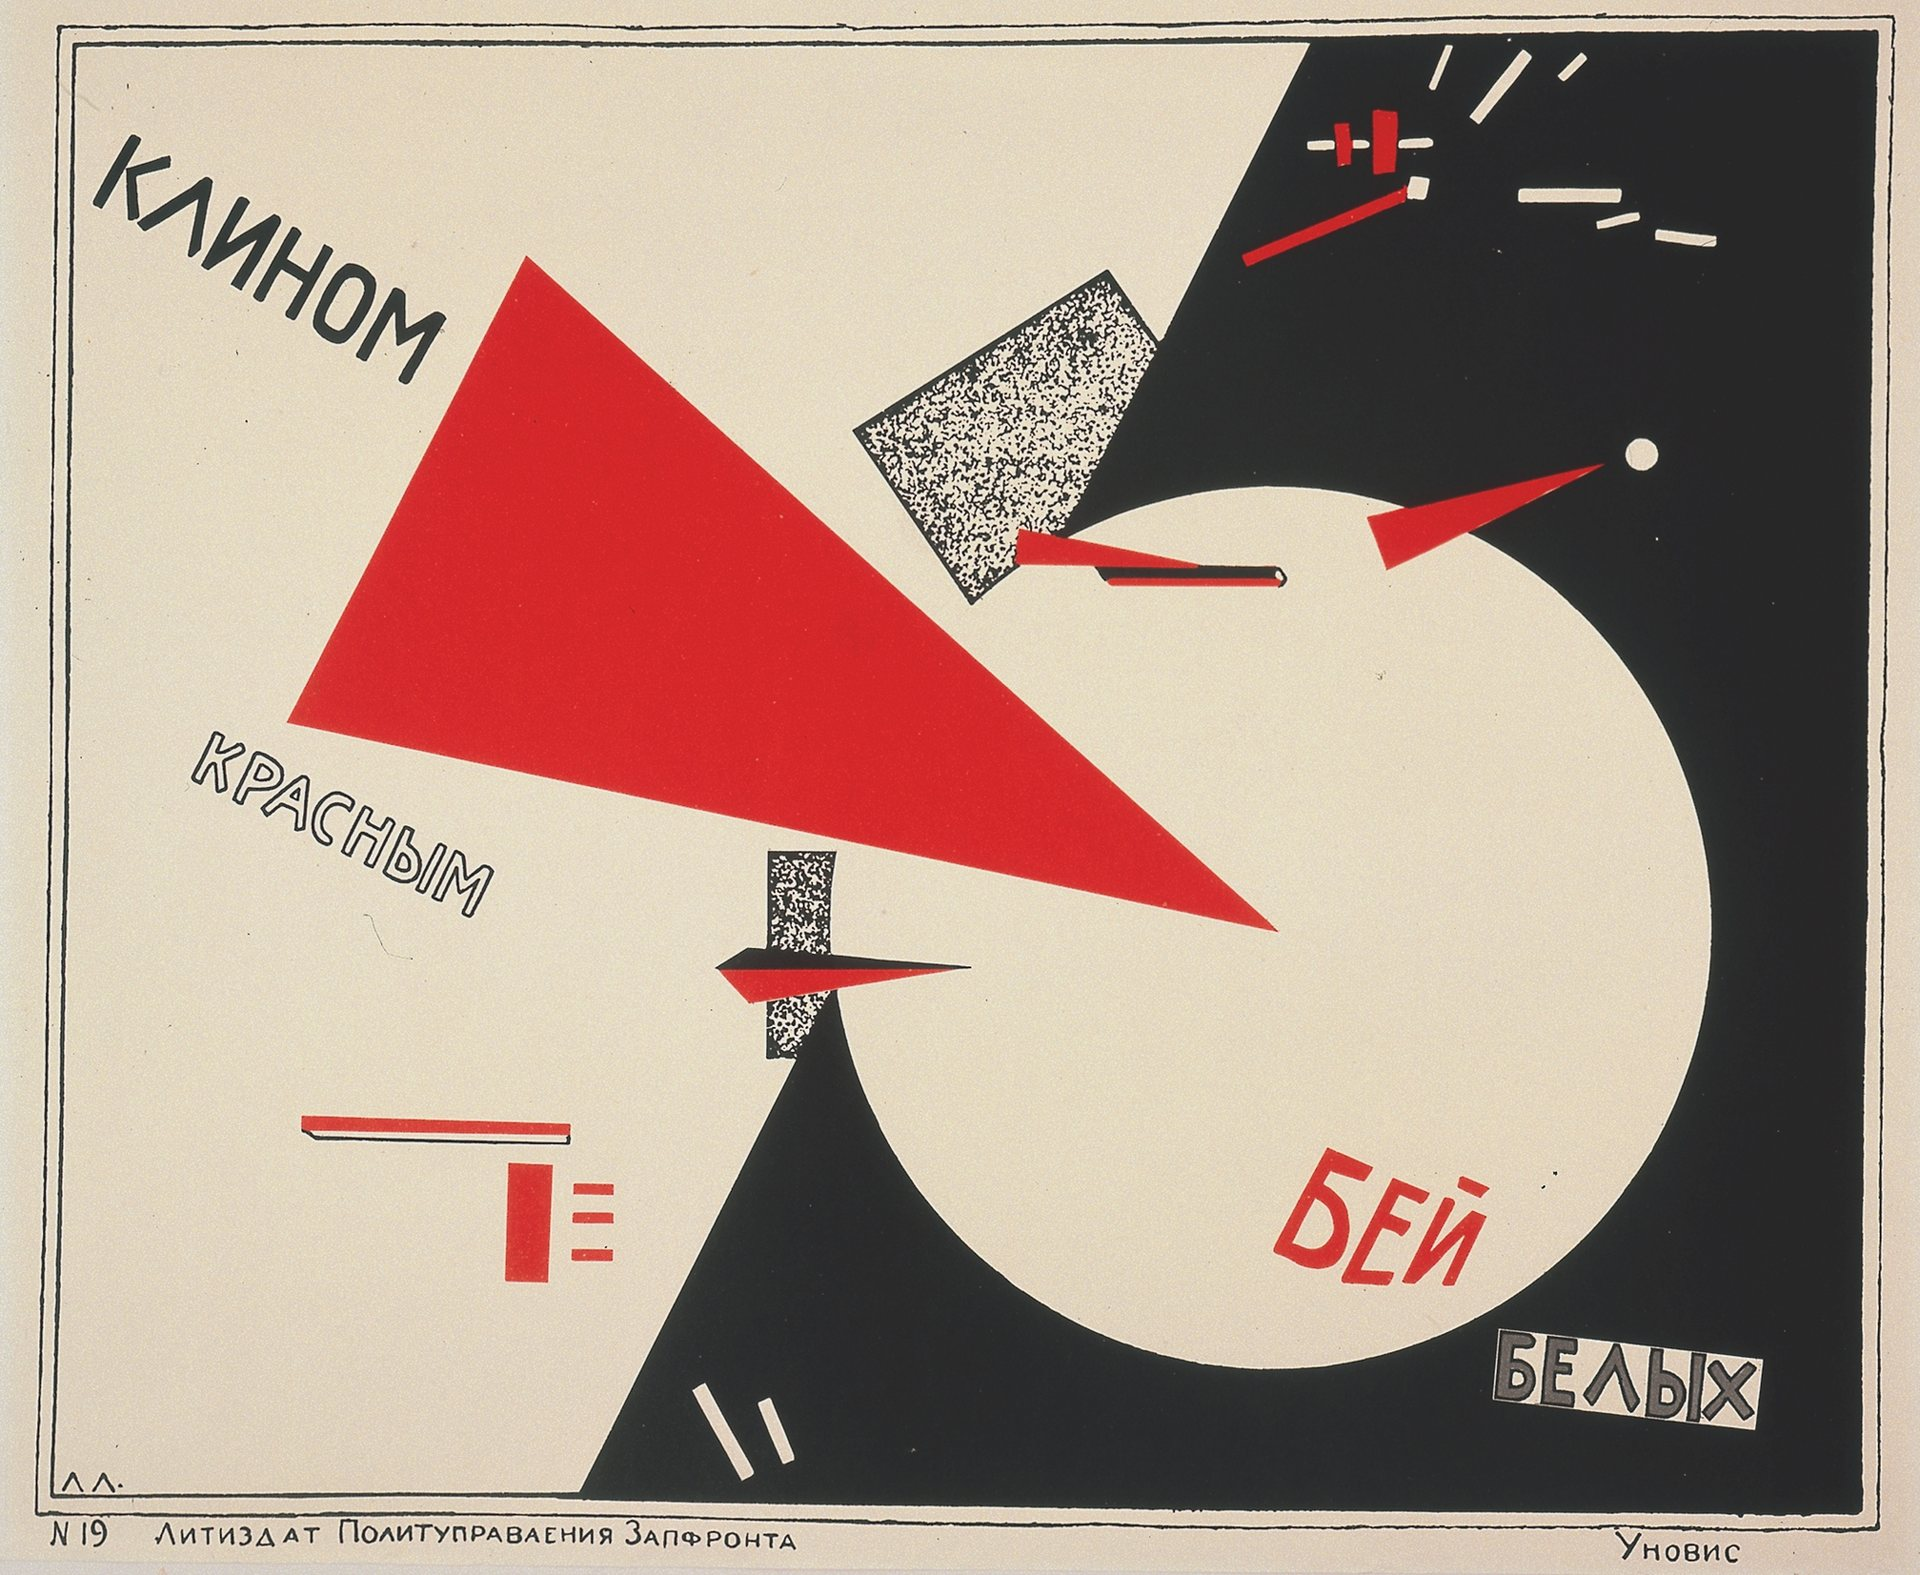 el-lissitzkys-1919-poster-beat-the-whites-with-the-red-wedge-photograph-peter-cox-collection-van-abbemuseum-eindhoven-the-netherlands